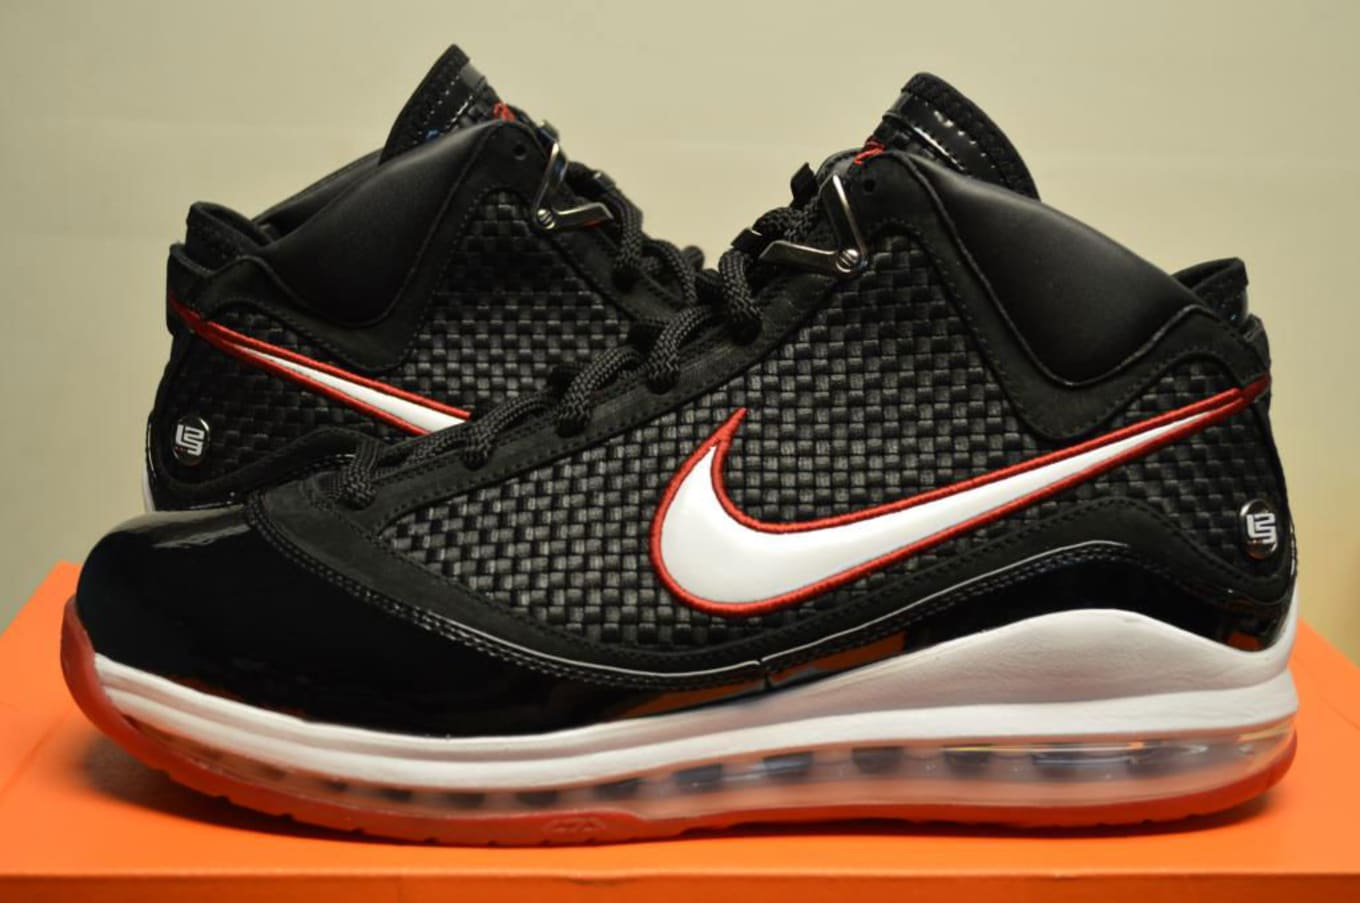 daa76b93503 Nike LeBron Samples That Never Released